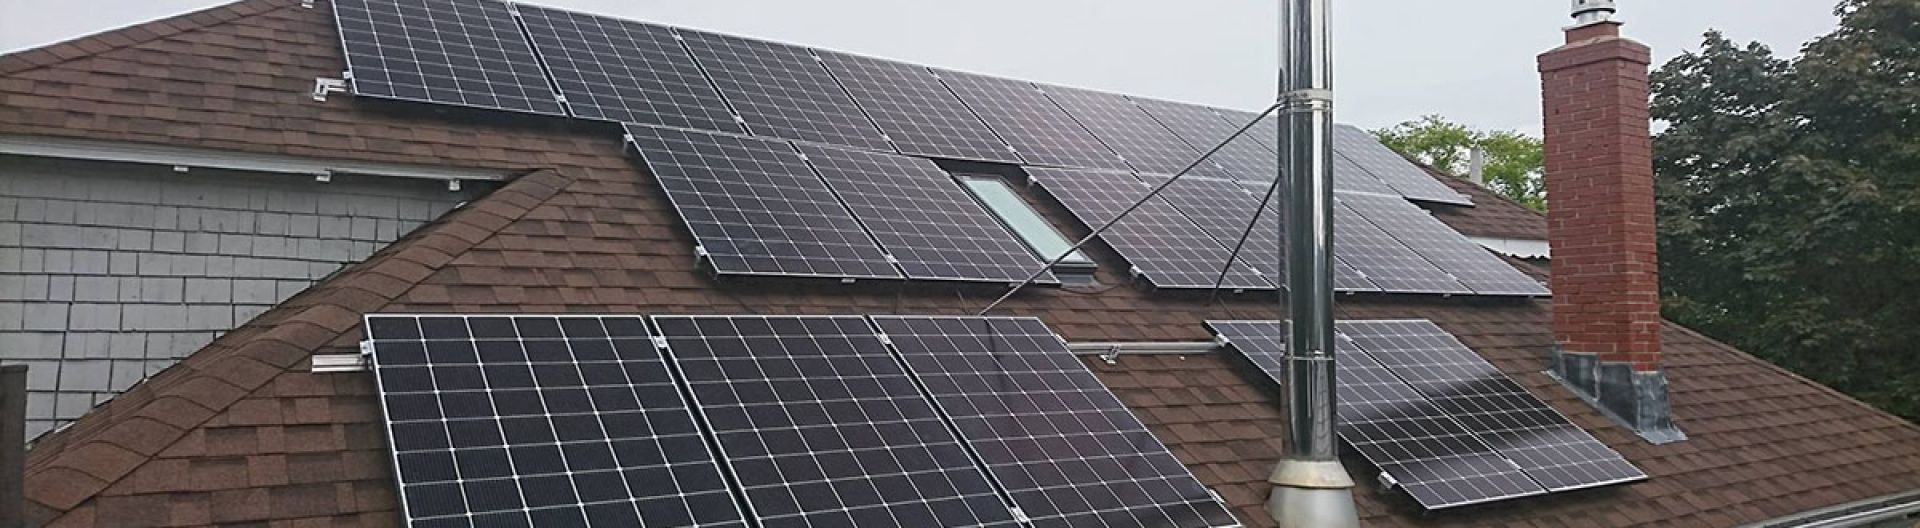 How to participate in the Solar City Halifax program | Halifax